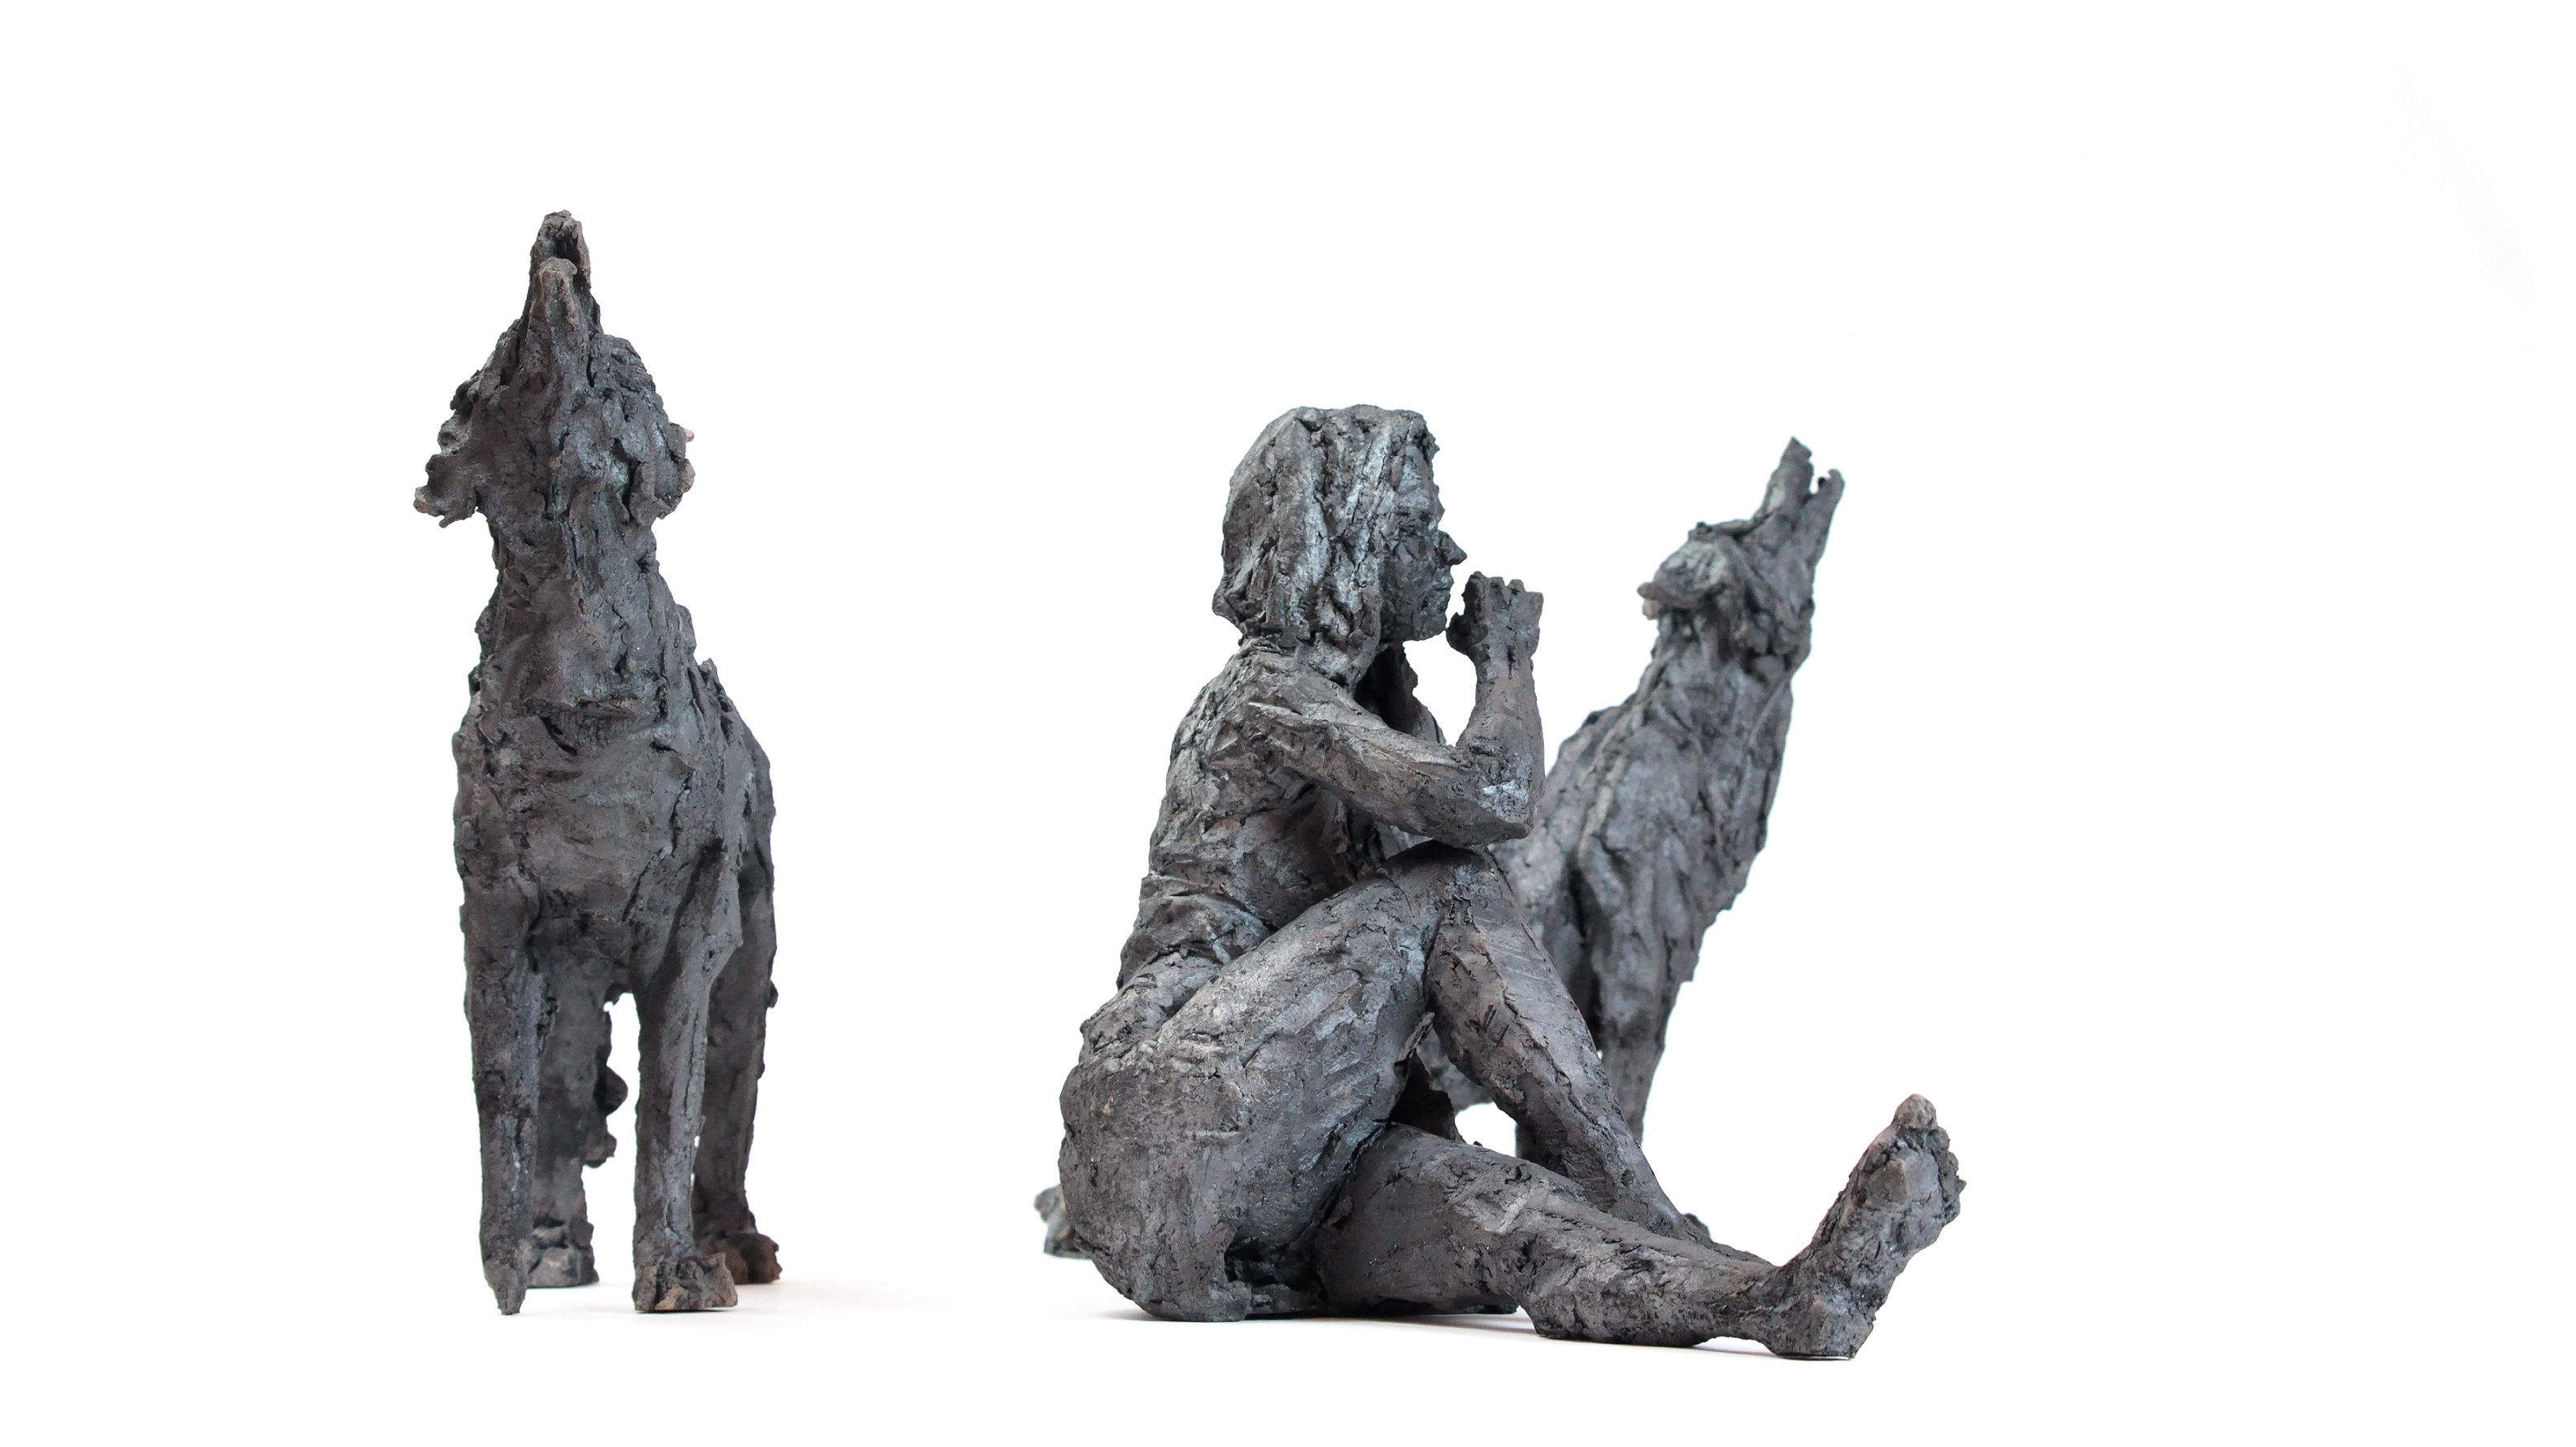 Wolf Pack - Cécile Raynal - Sculpture - detail 1